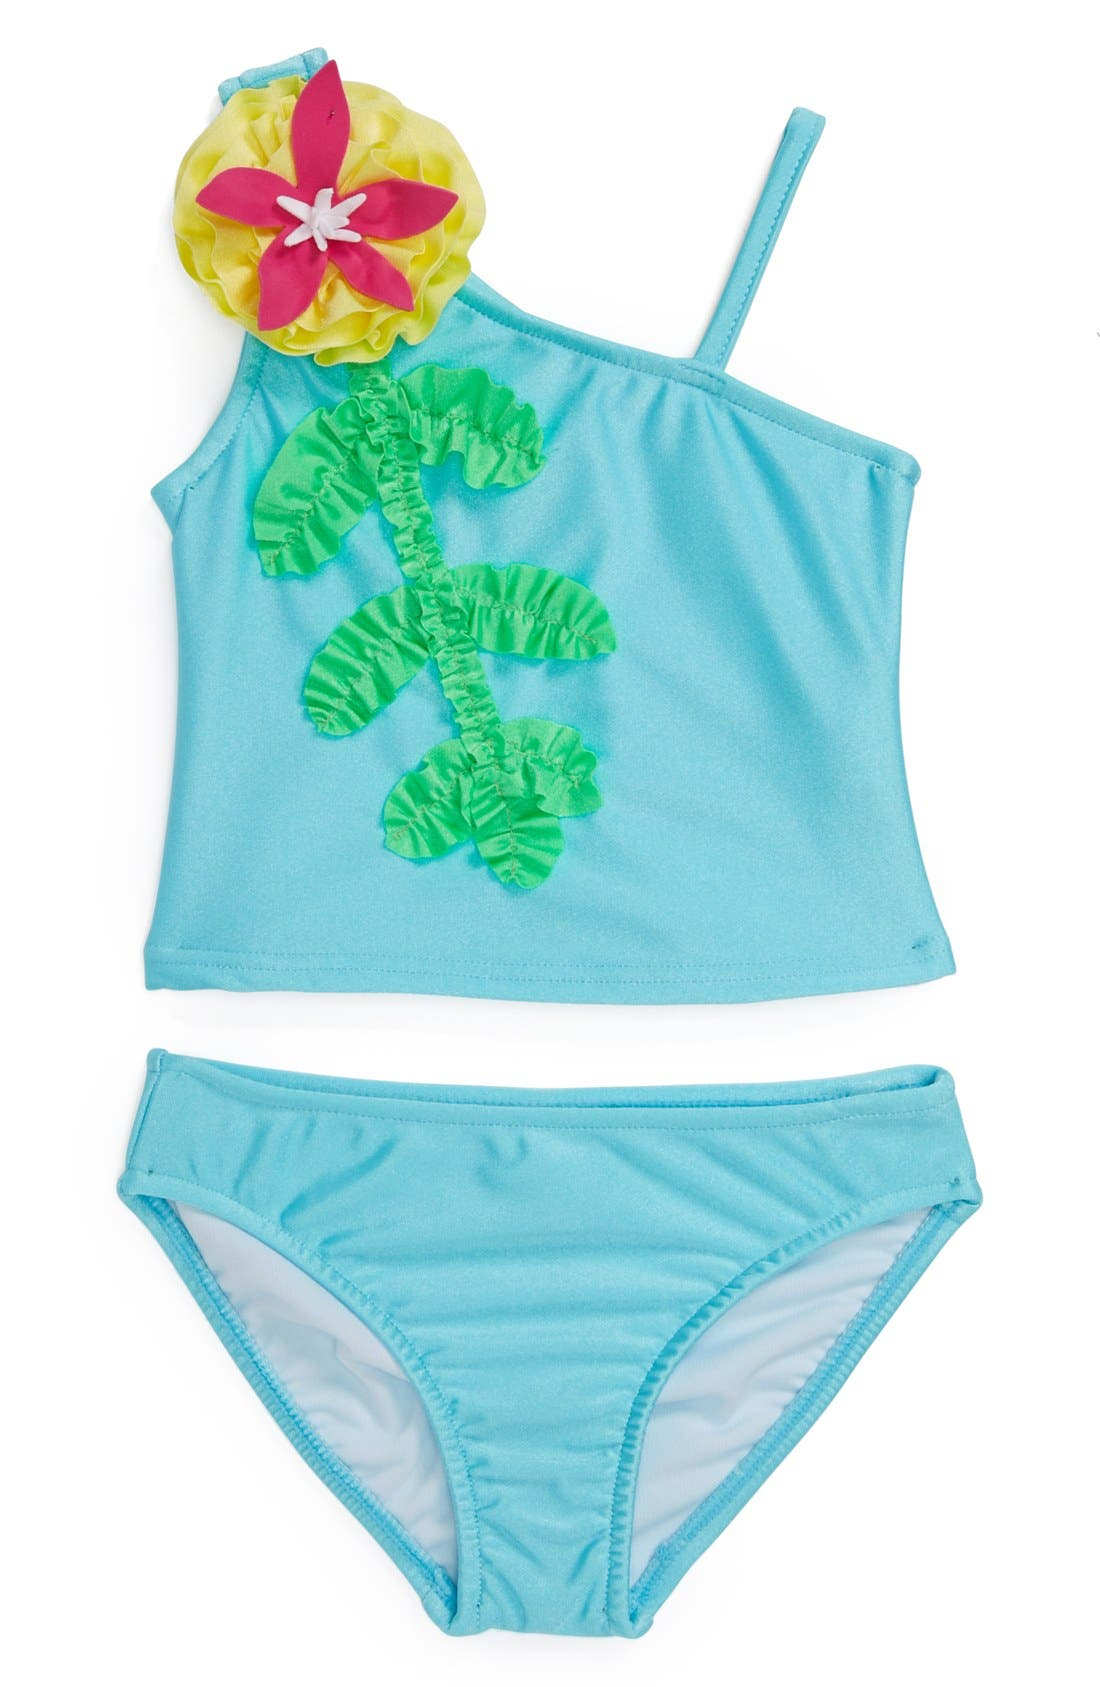 Main Image - Love U Lots 'Caribbean' Two-Piece Swimsuit (Baby Girls)